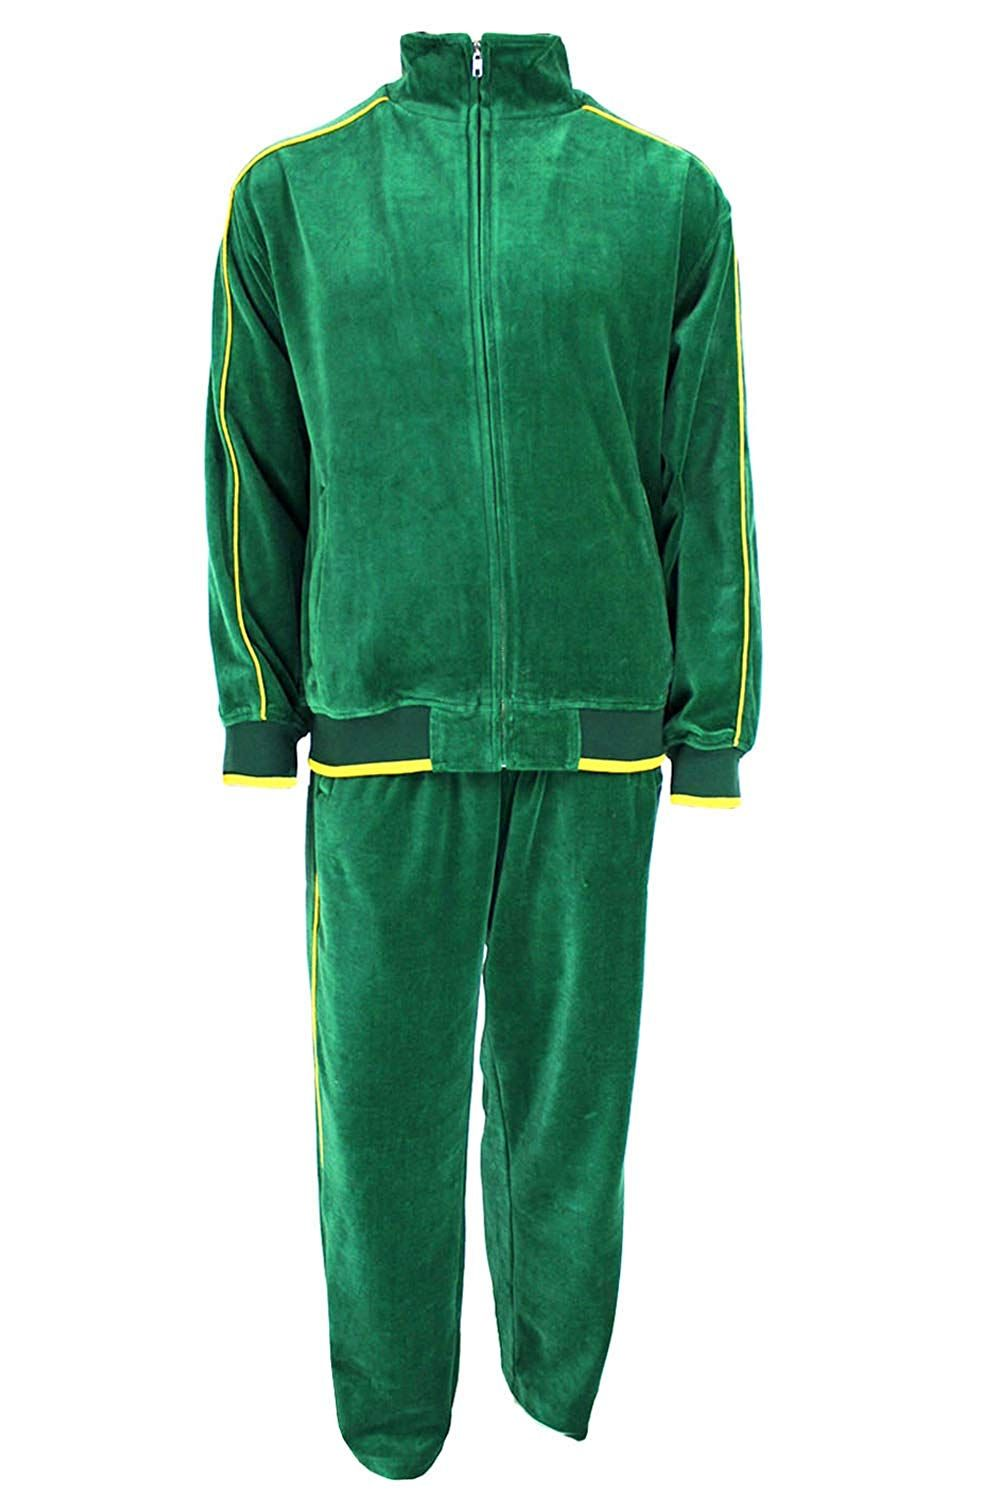 70s Workout Clothes 80s Tracksuits Running Shorts Leotards Sweatsedo Mens Velour Tracksuit 129 In 2020 Mens Velour Tracksuit Mens Clothing Styles Velvet Tracksuit